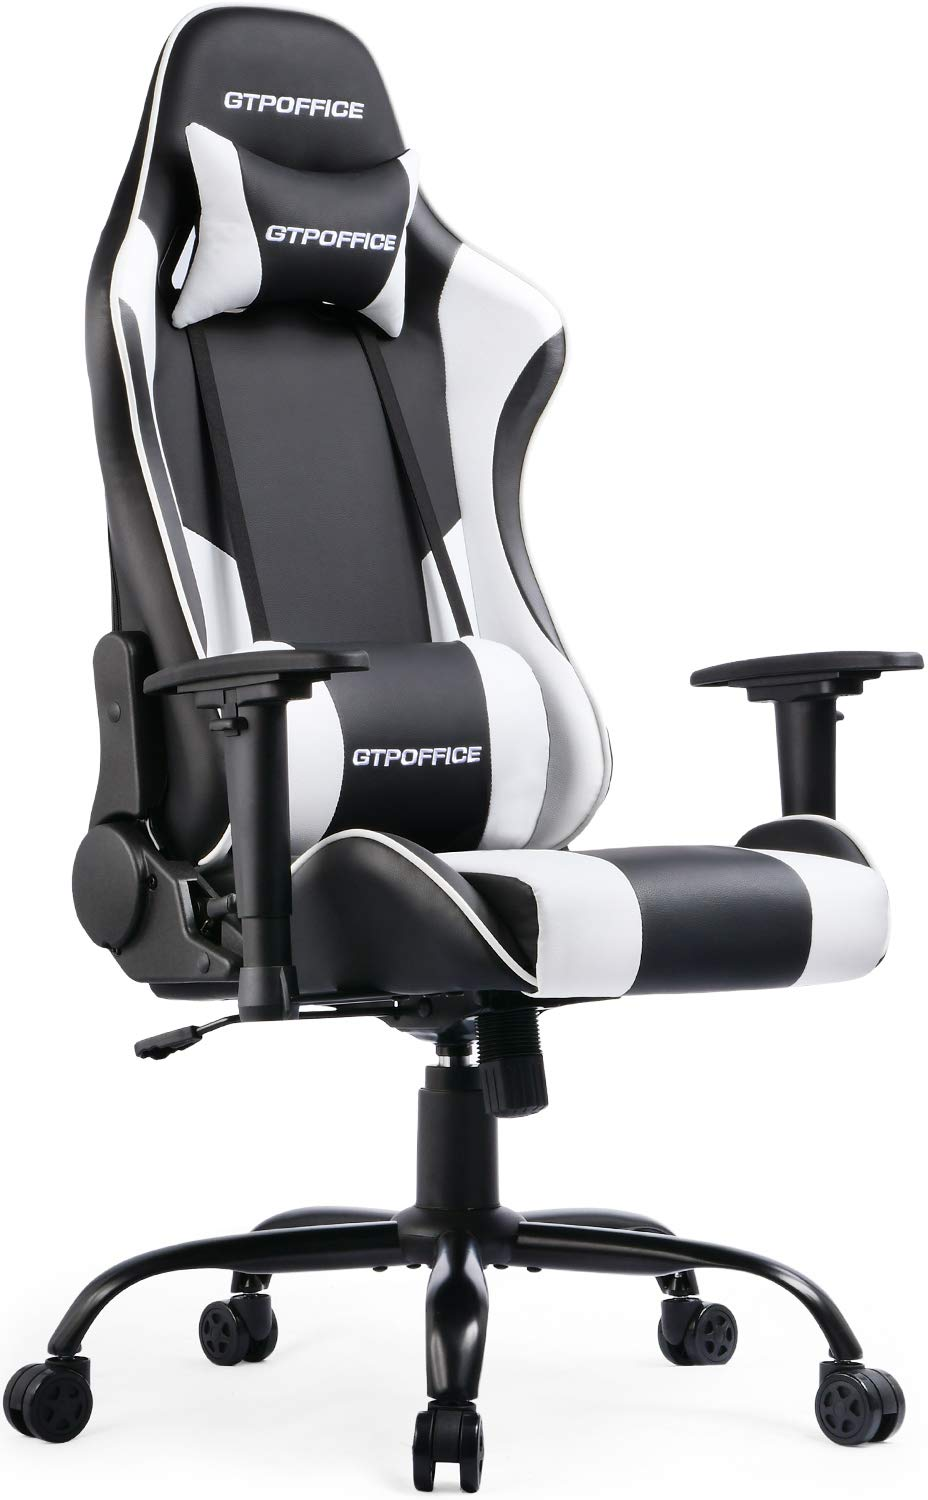 Admirable Gtpoffice Gaming Chair Reclining Office Computer Desk Chairs High Back For Adult Adjustable Swivel With Headrest And Lumbar Support Cushion White Ocoug Best Dining Table And Chair Ideas Images Ocougorg